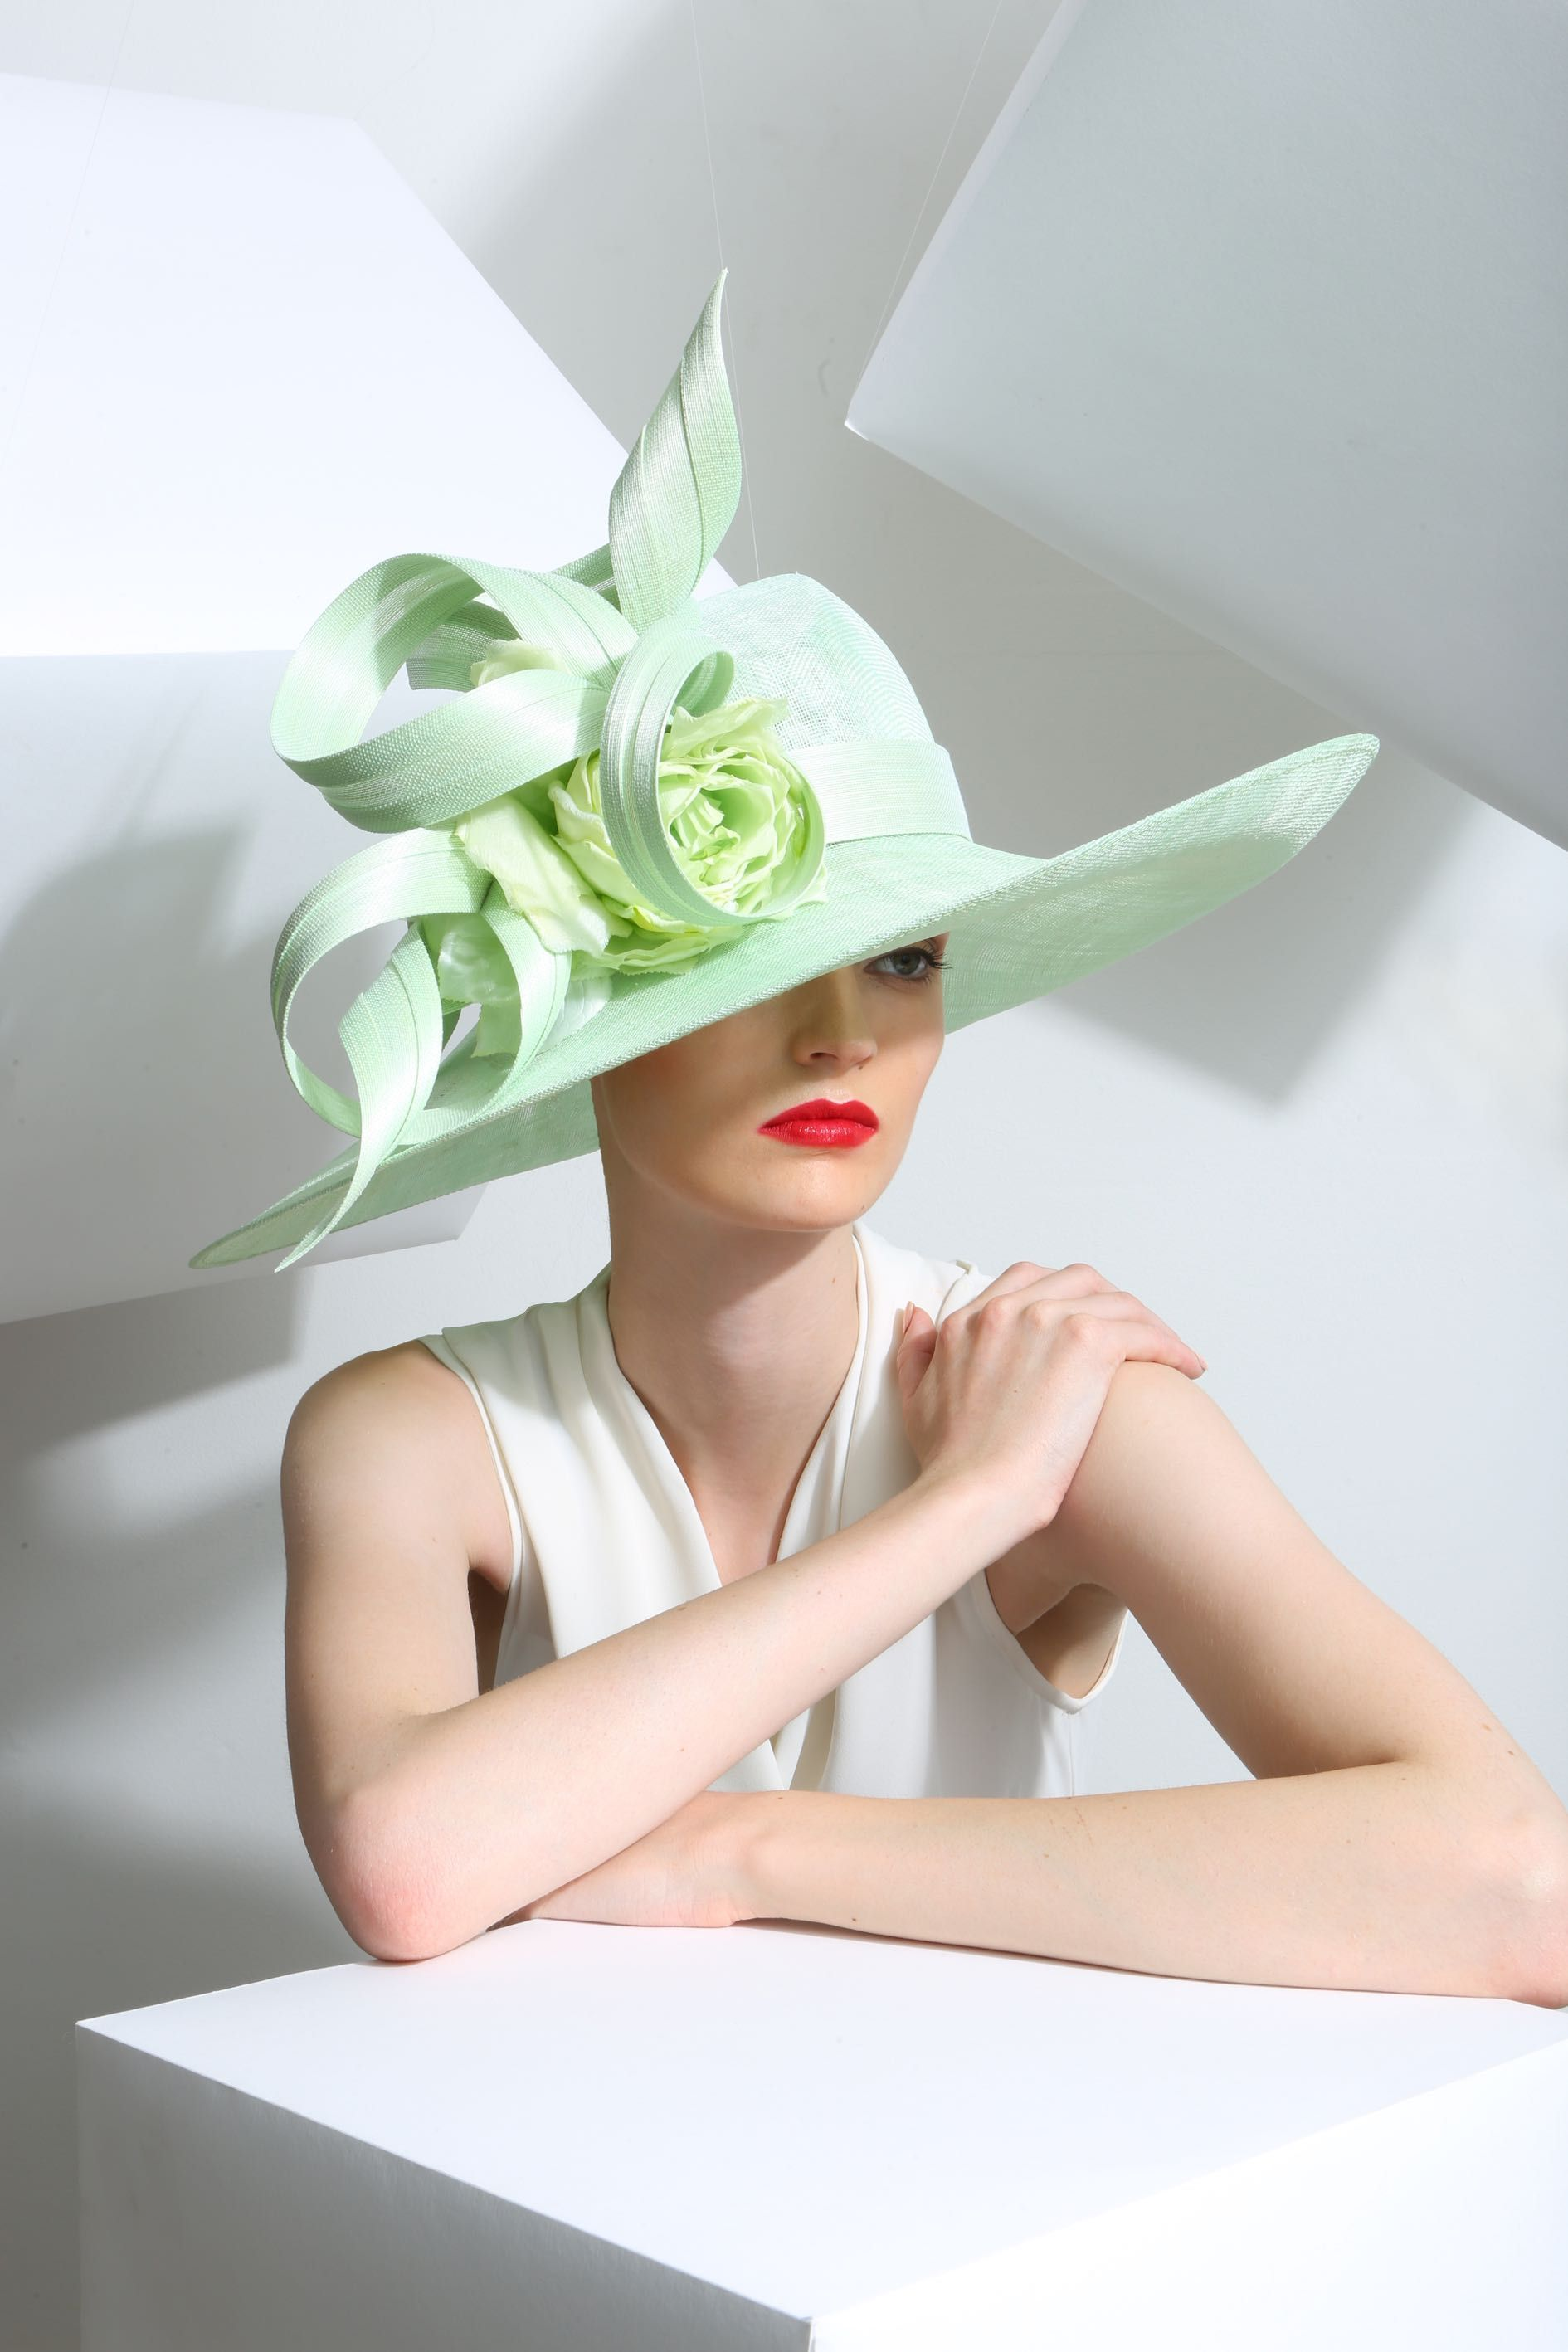 Philip Treacy Spring-Summer 2015 OC-876 (=)